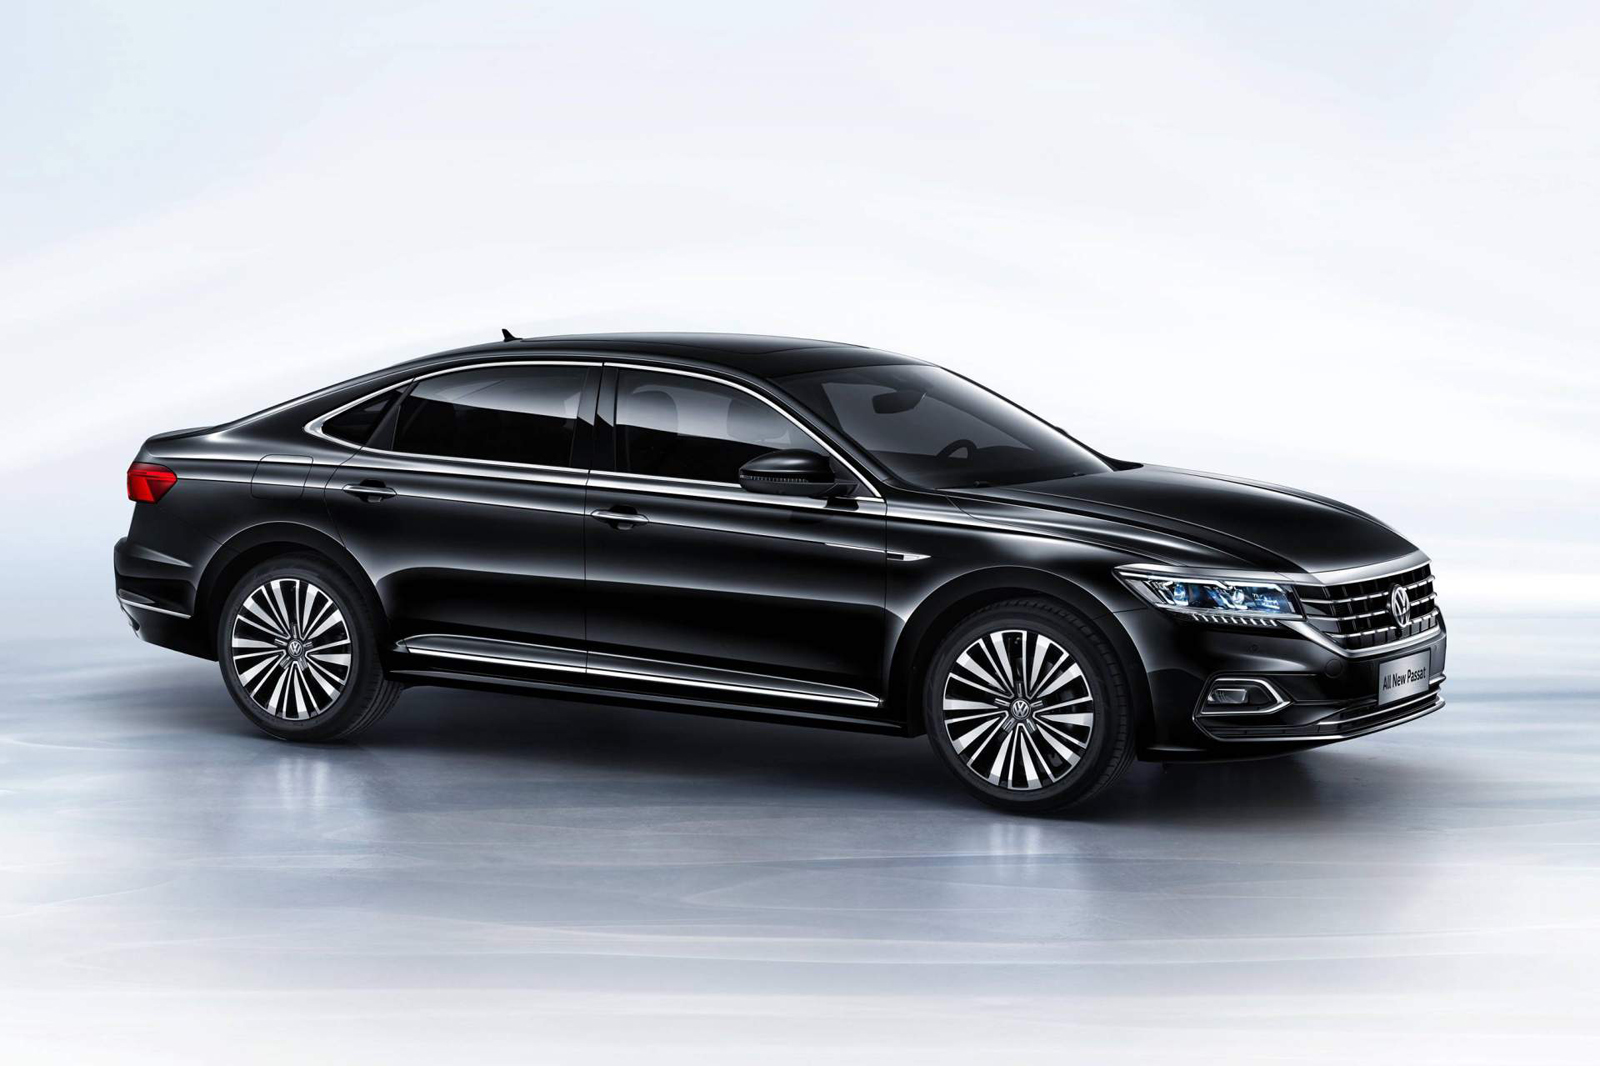 new vw passat revealed in china likely previews american. Black Bedroom Furniture Sets. Home Design Ideas